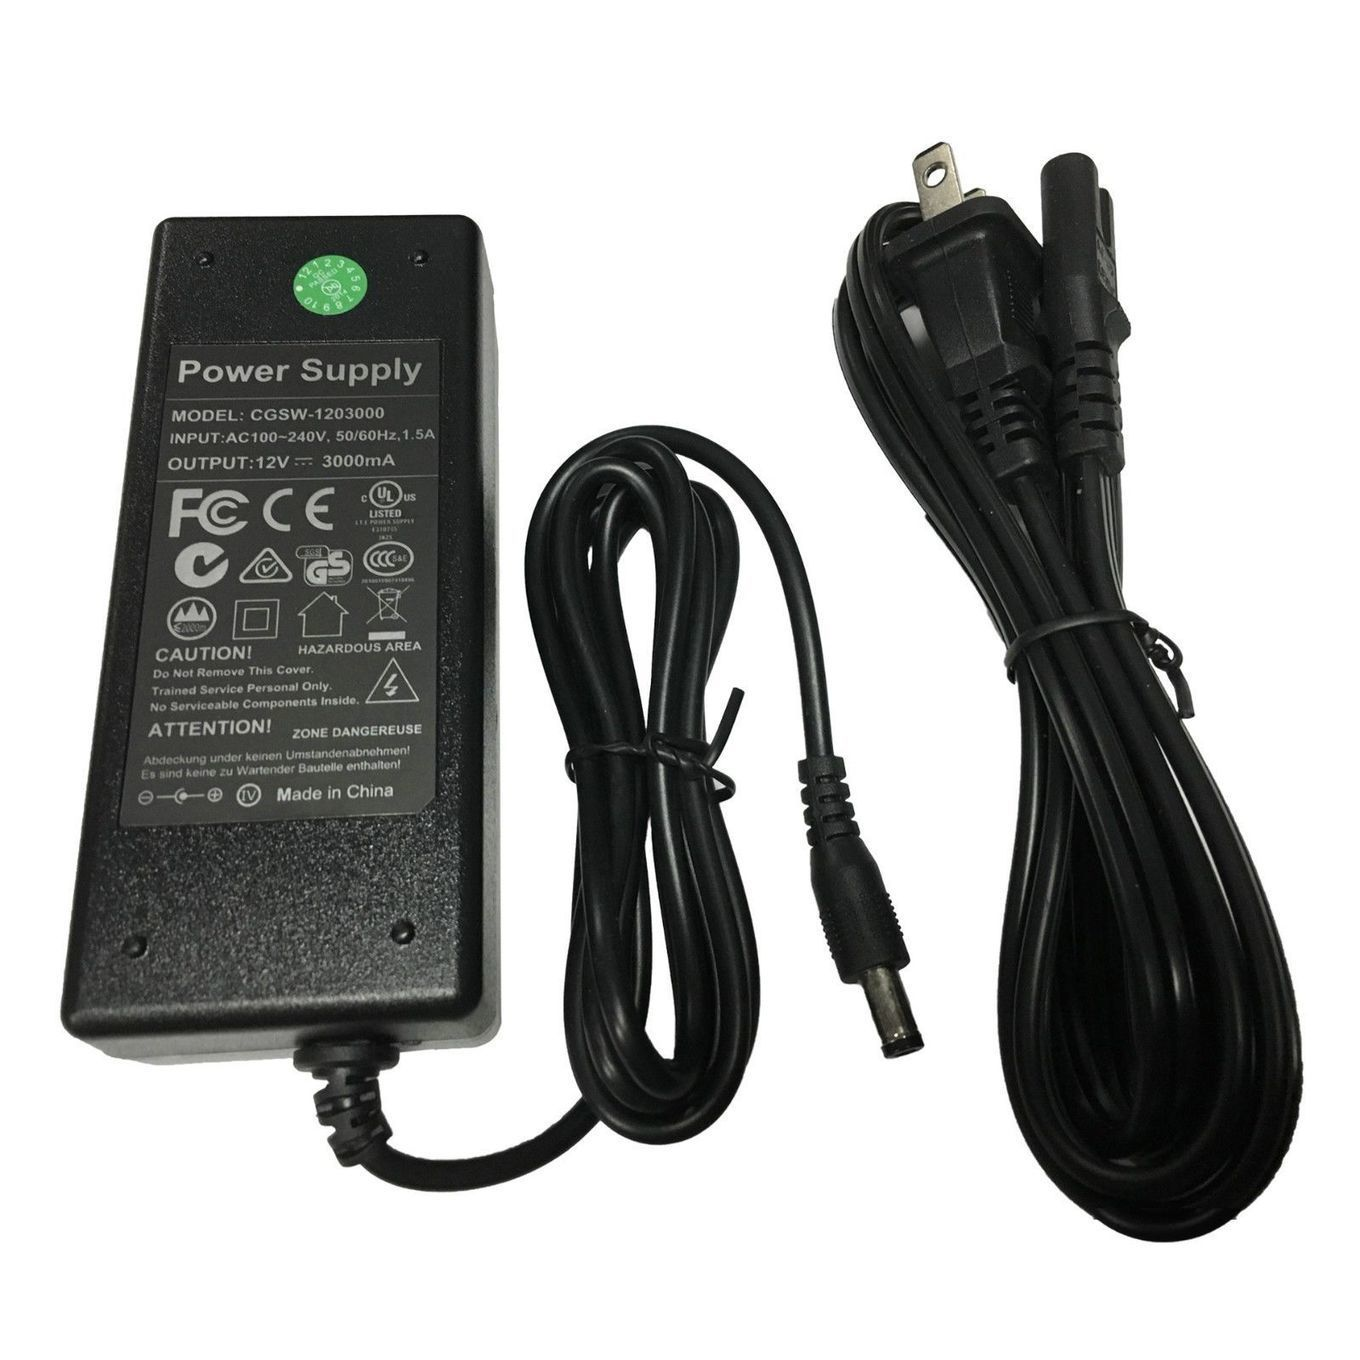 Ac Adapter Model Cgsw 1203000 12v 3a 3000mah Removing And Replacing Parts Dell Latitude C600 C500 Series Service